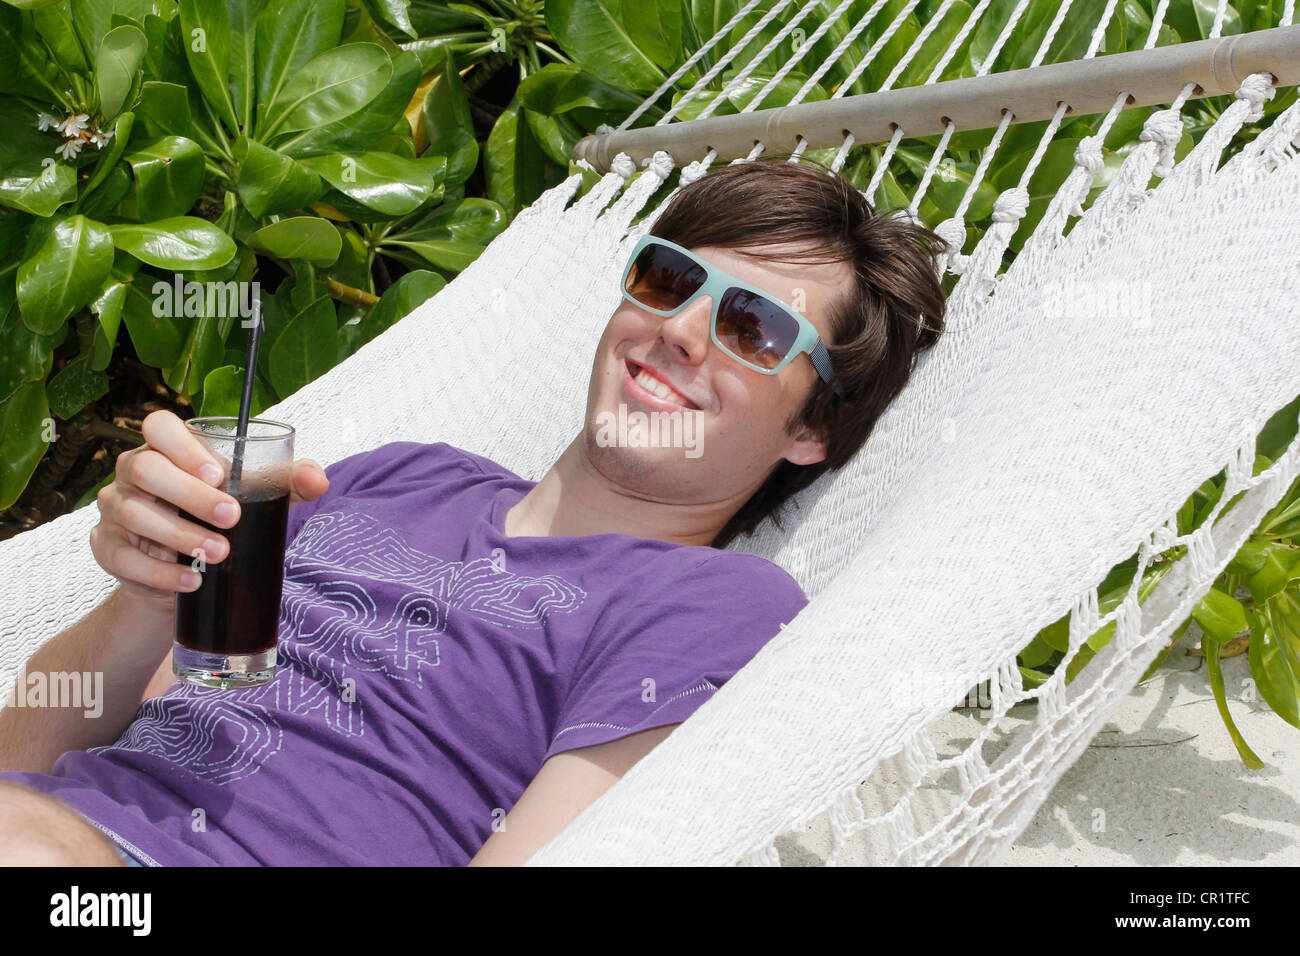 Young man relaxing in a hammock, holding a drink, Maldives, Indian Ocean - Stock Image